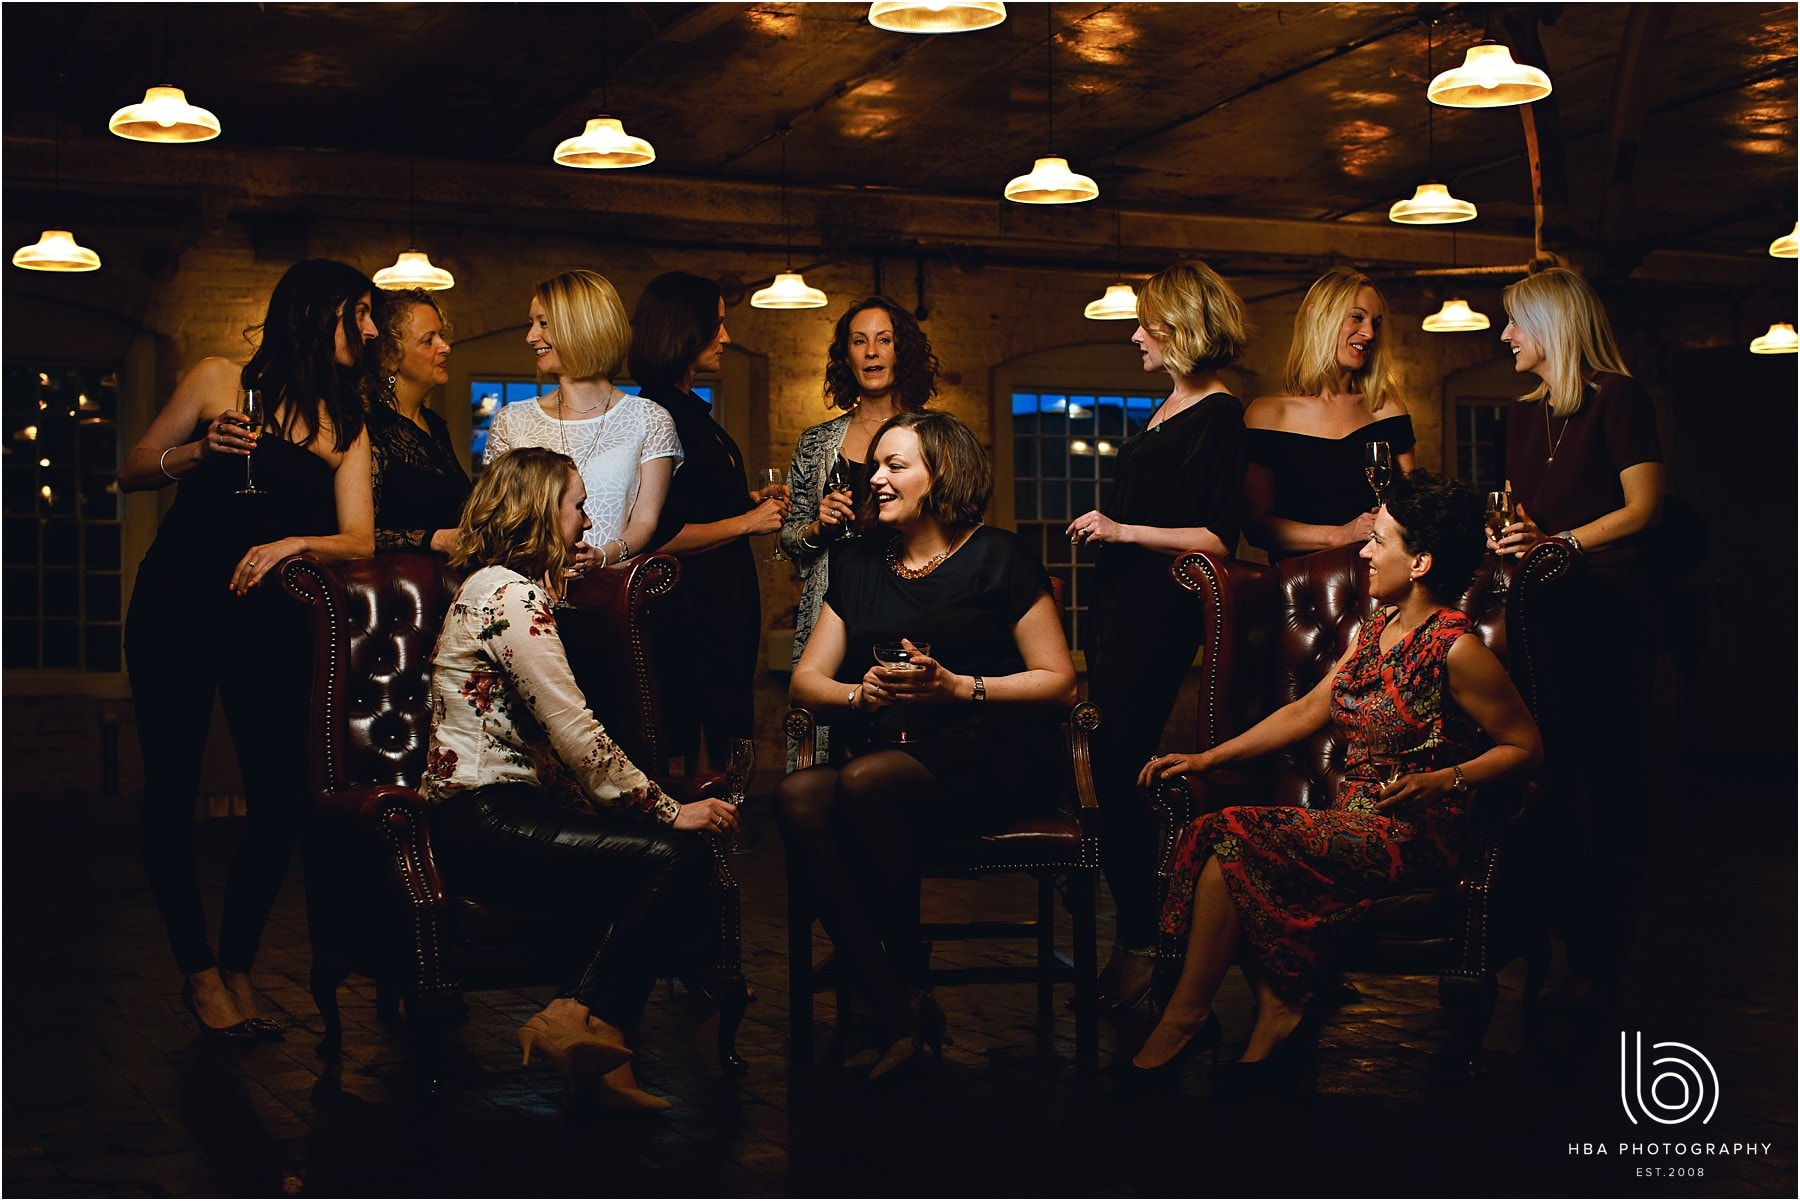 a group photo of all the girls in orange light sitting on chairs